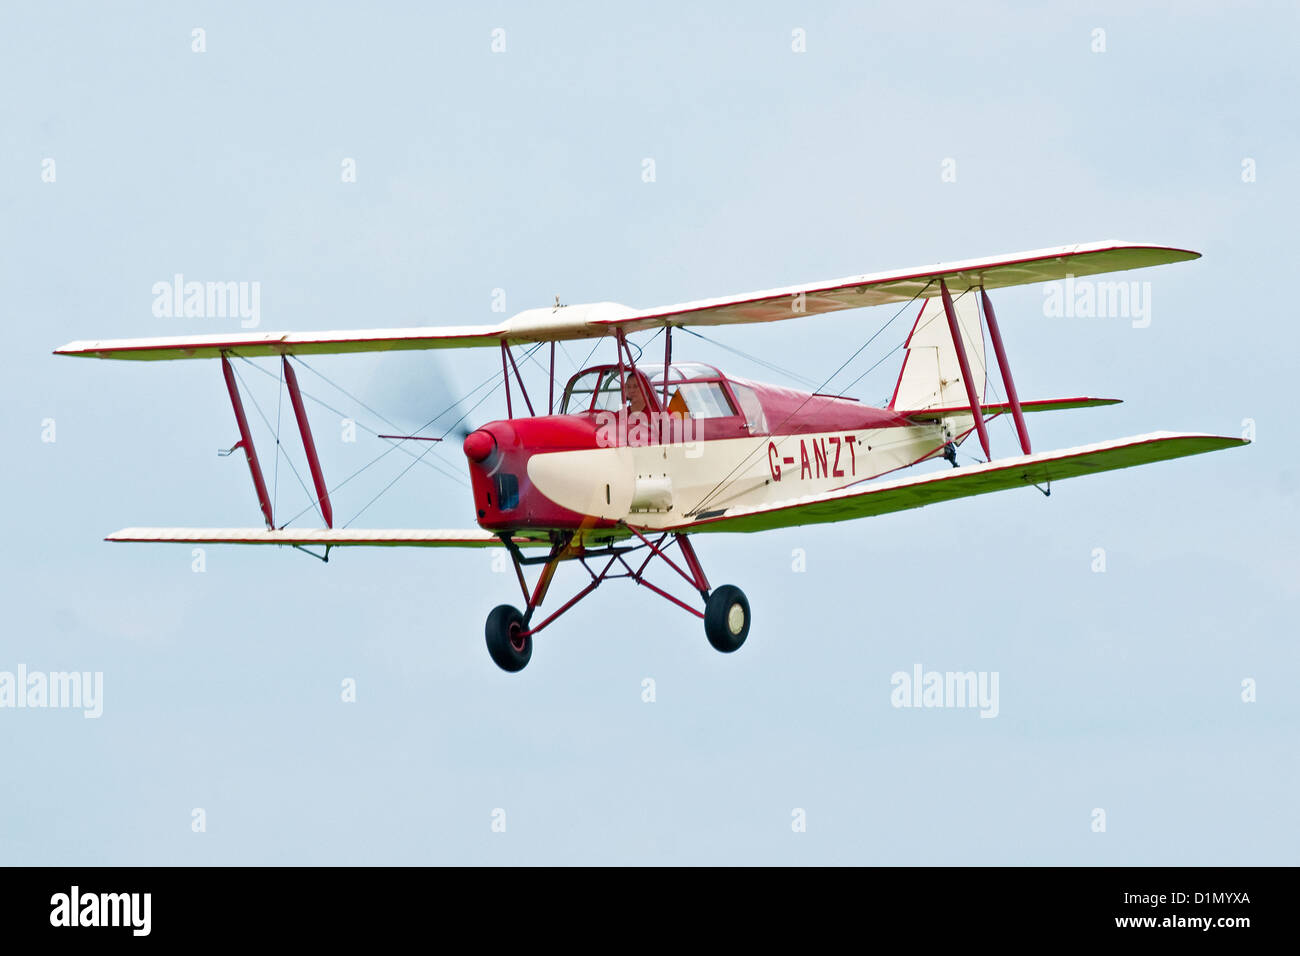 Thruxton Jackaroo G-ANZT at the Sywell Air Show 2012 - Stock Image